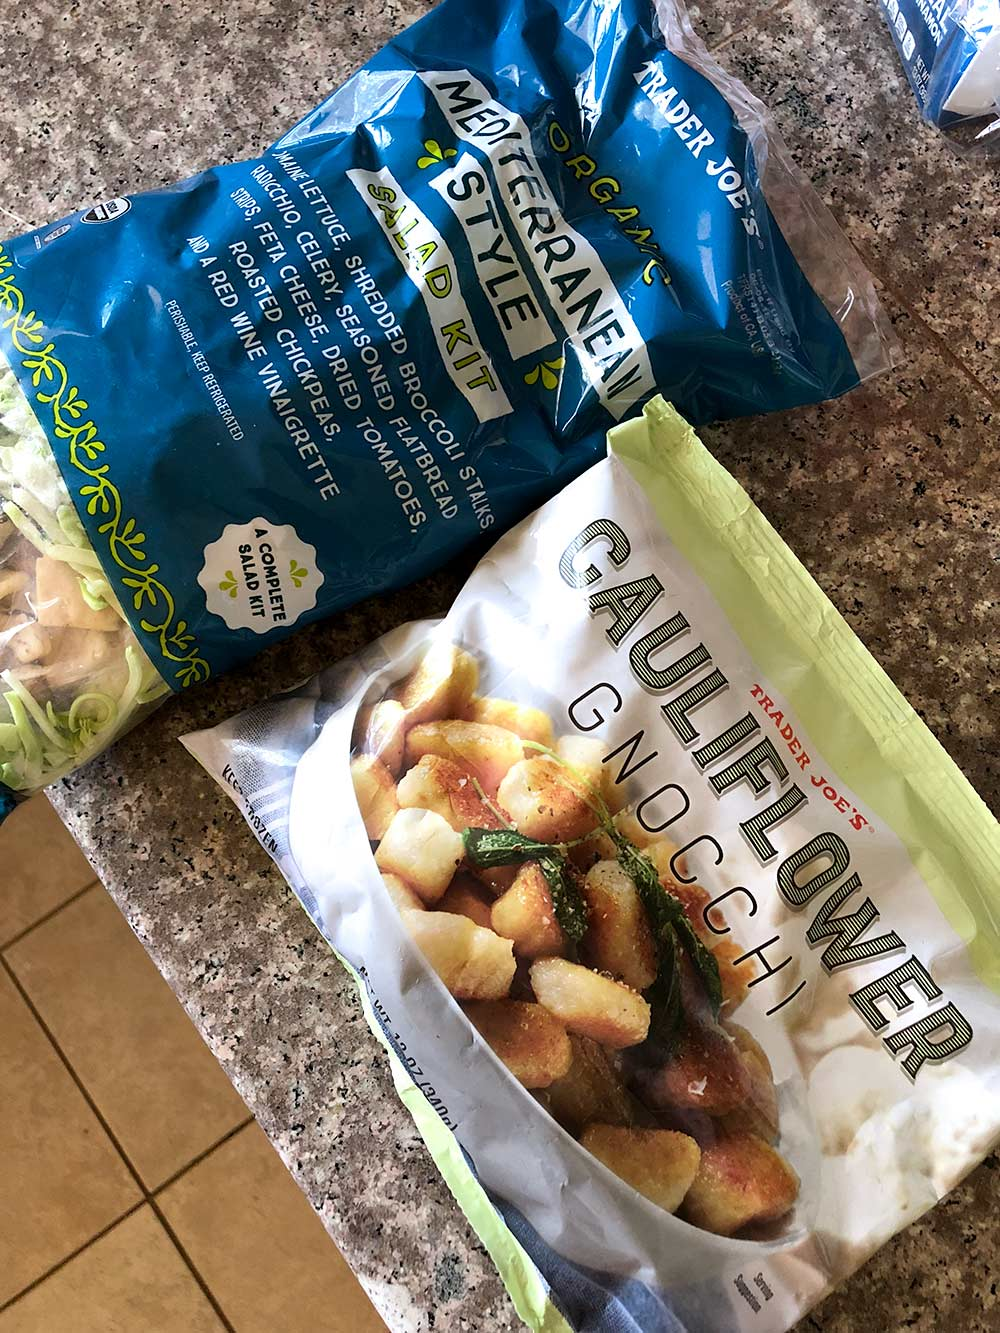 trader joes cauliflower gnocchi and mediterranean style salad kit